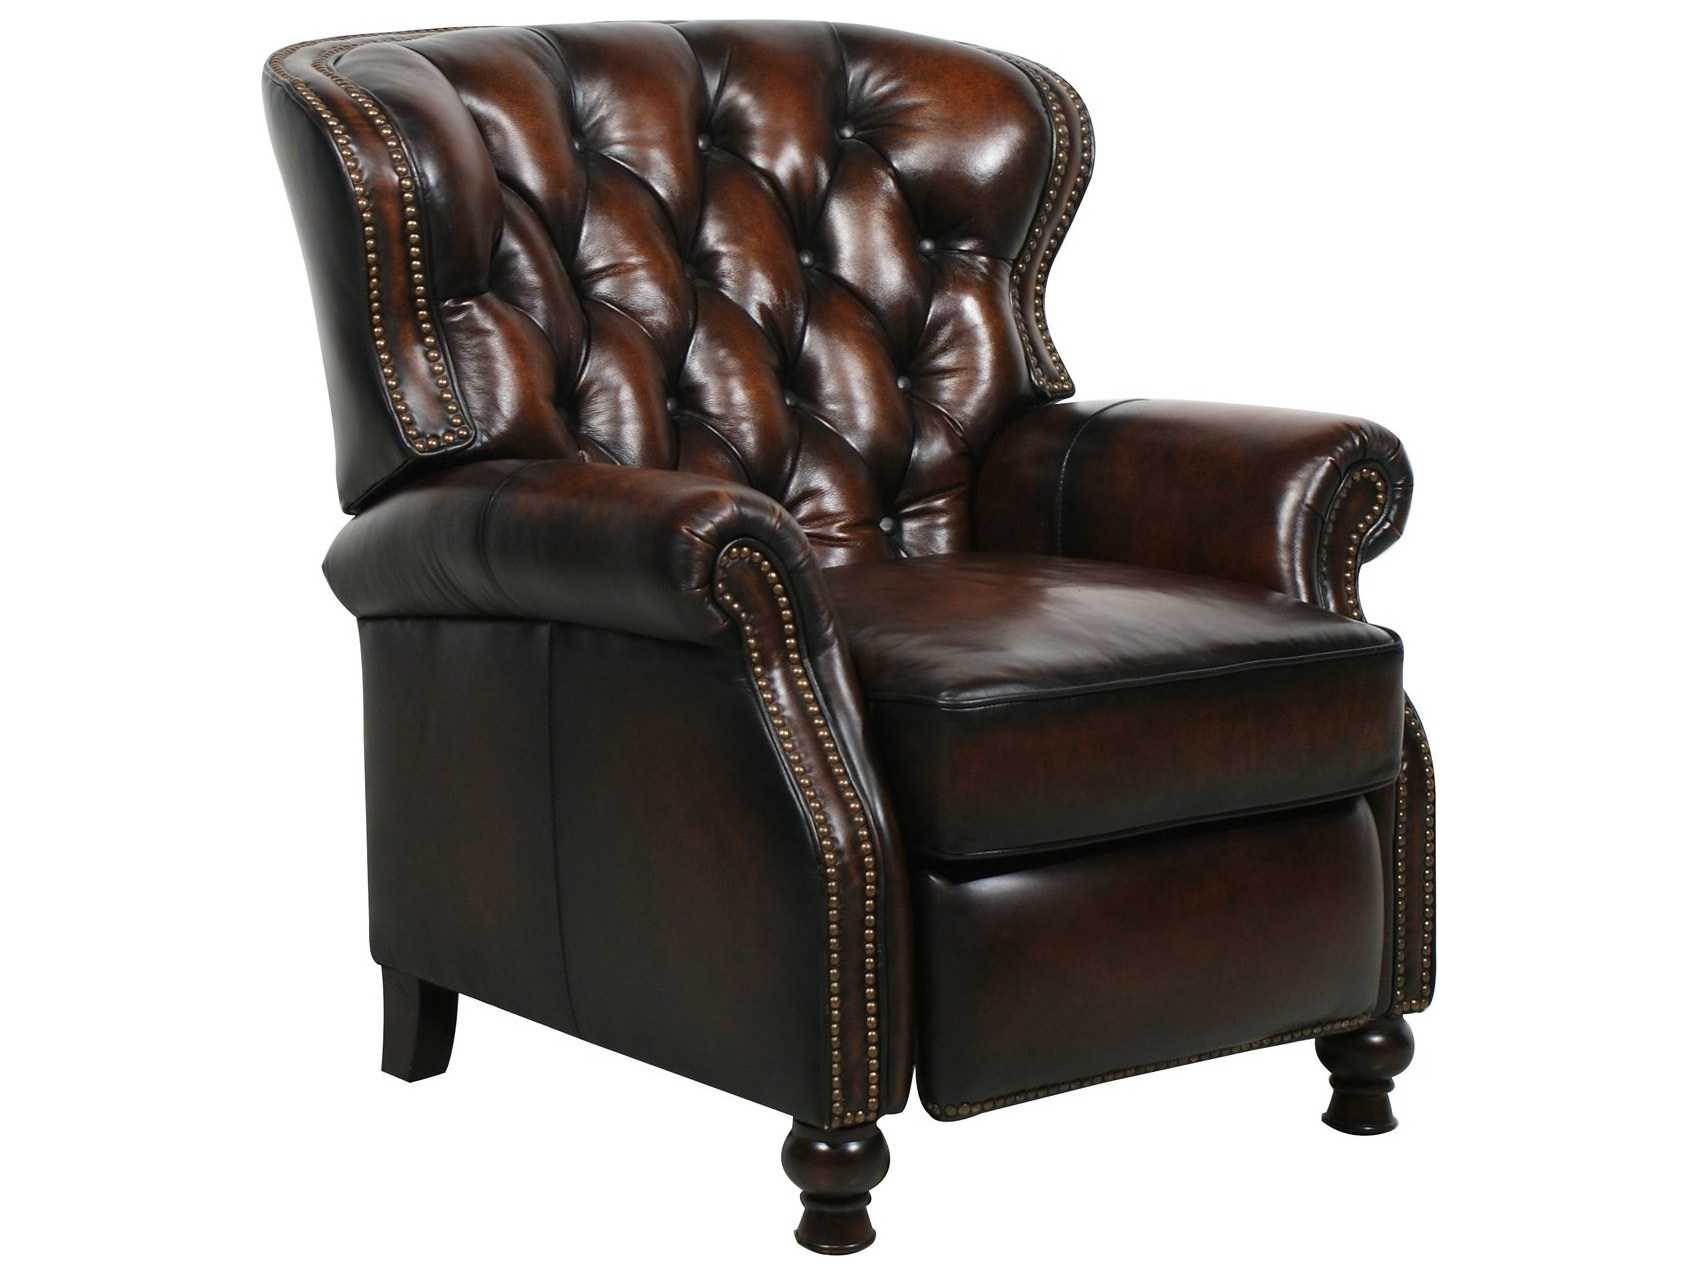 Barcalounger Vintage Presidential Ii Power Recliner